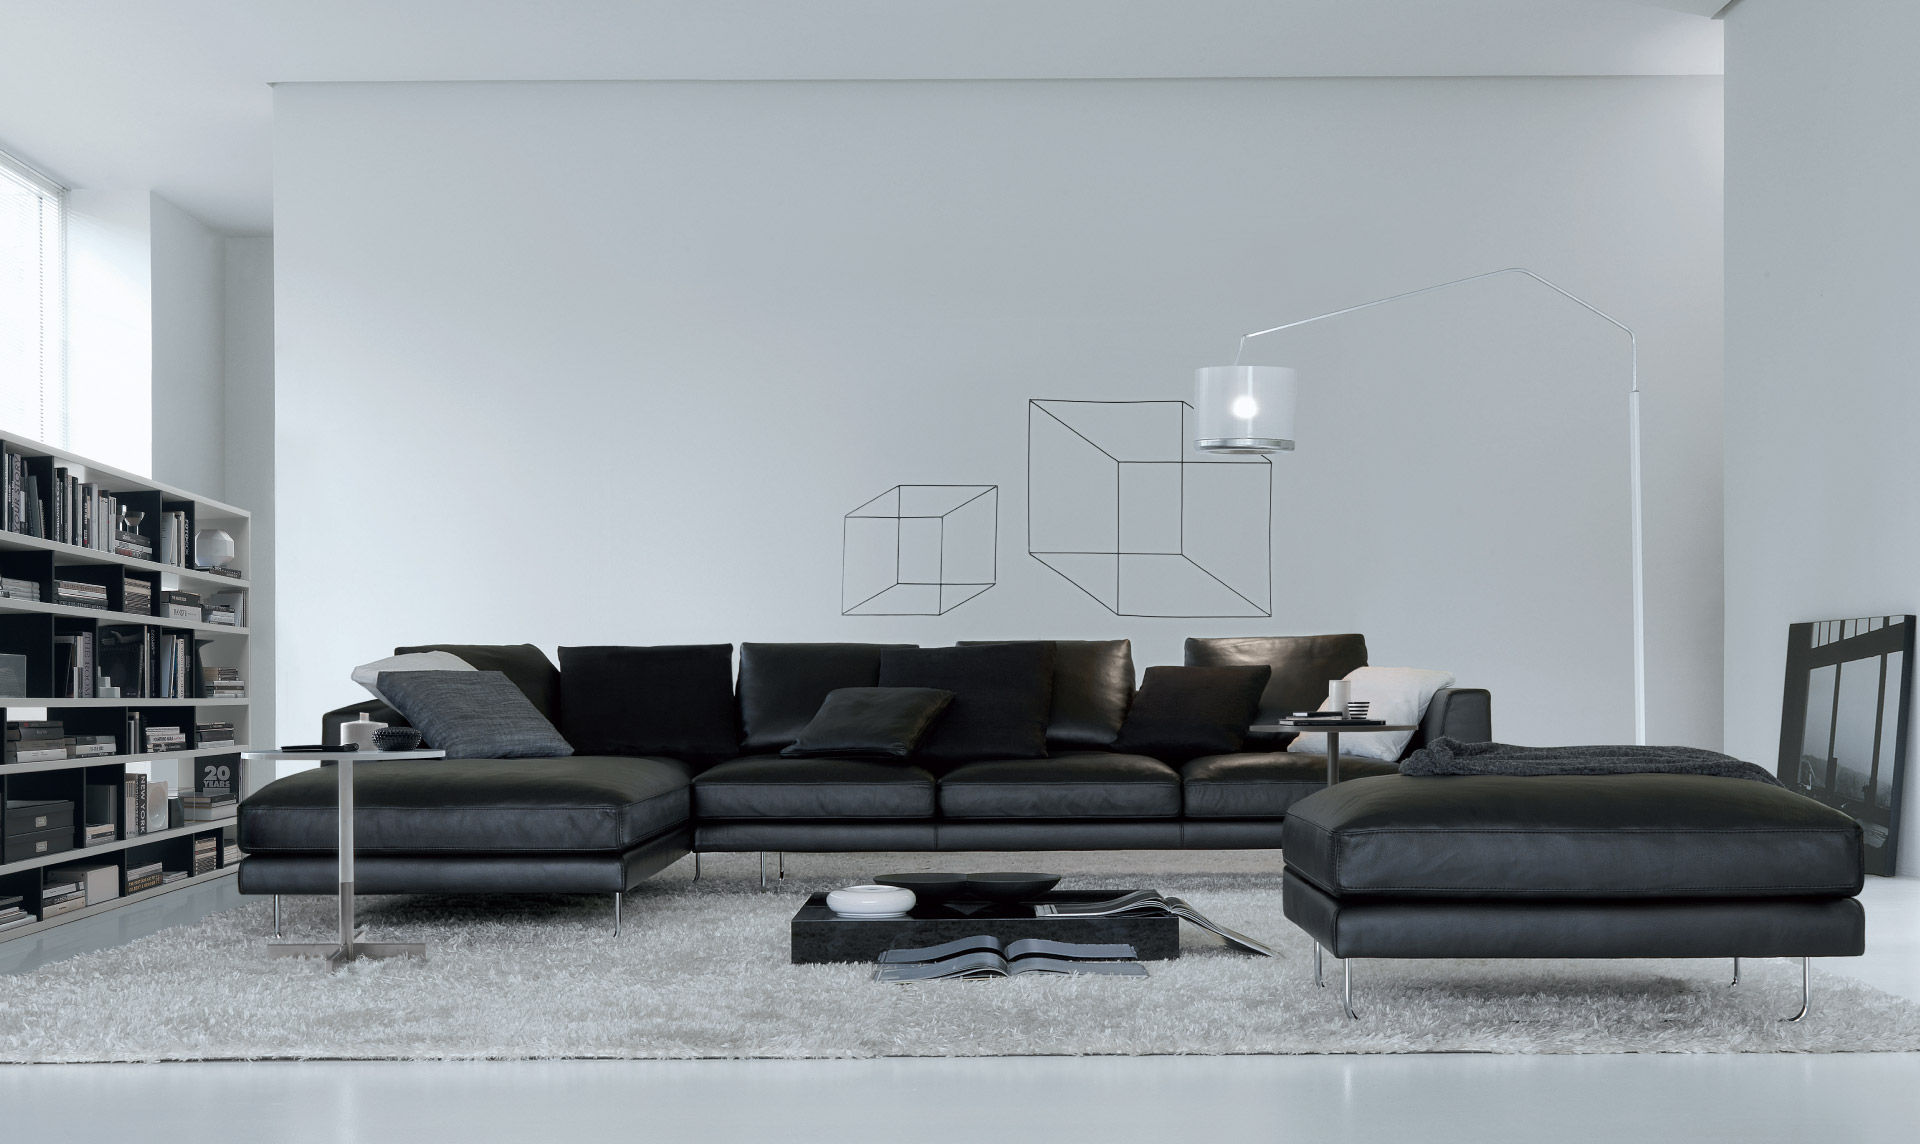 Modular Sofa Contemporary Leather Seater And Up BRIAN By - Sofa contemporain design